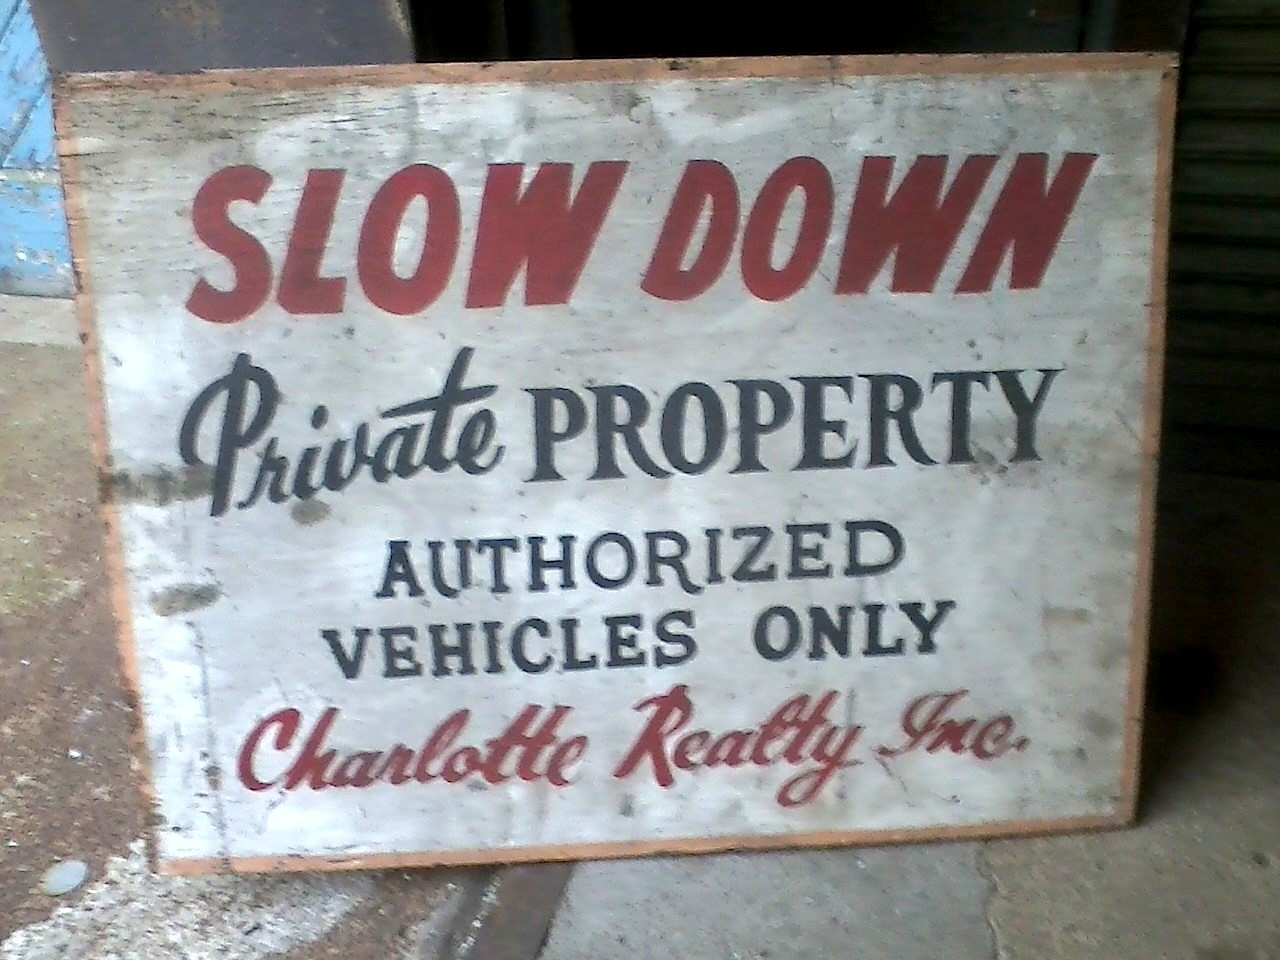 Charlotte Realty